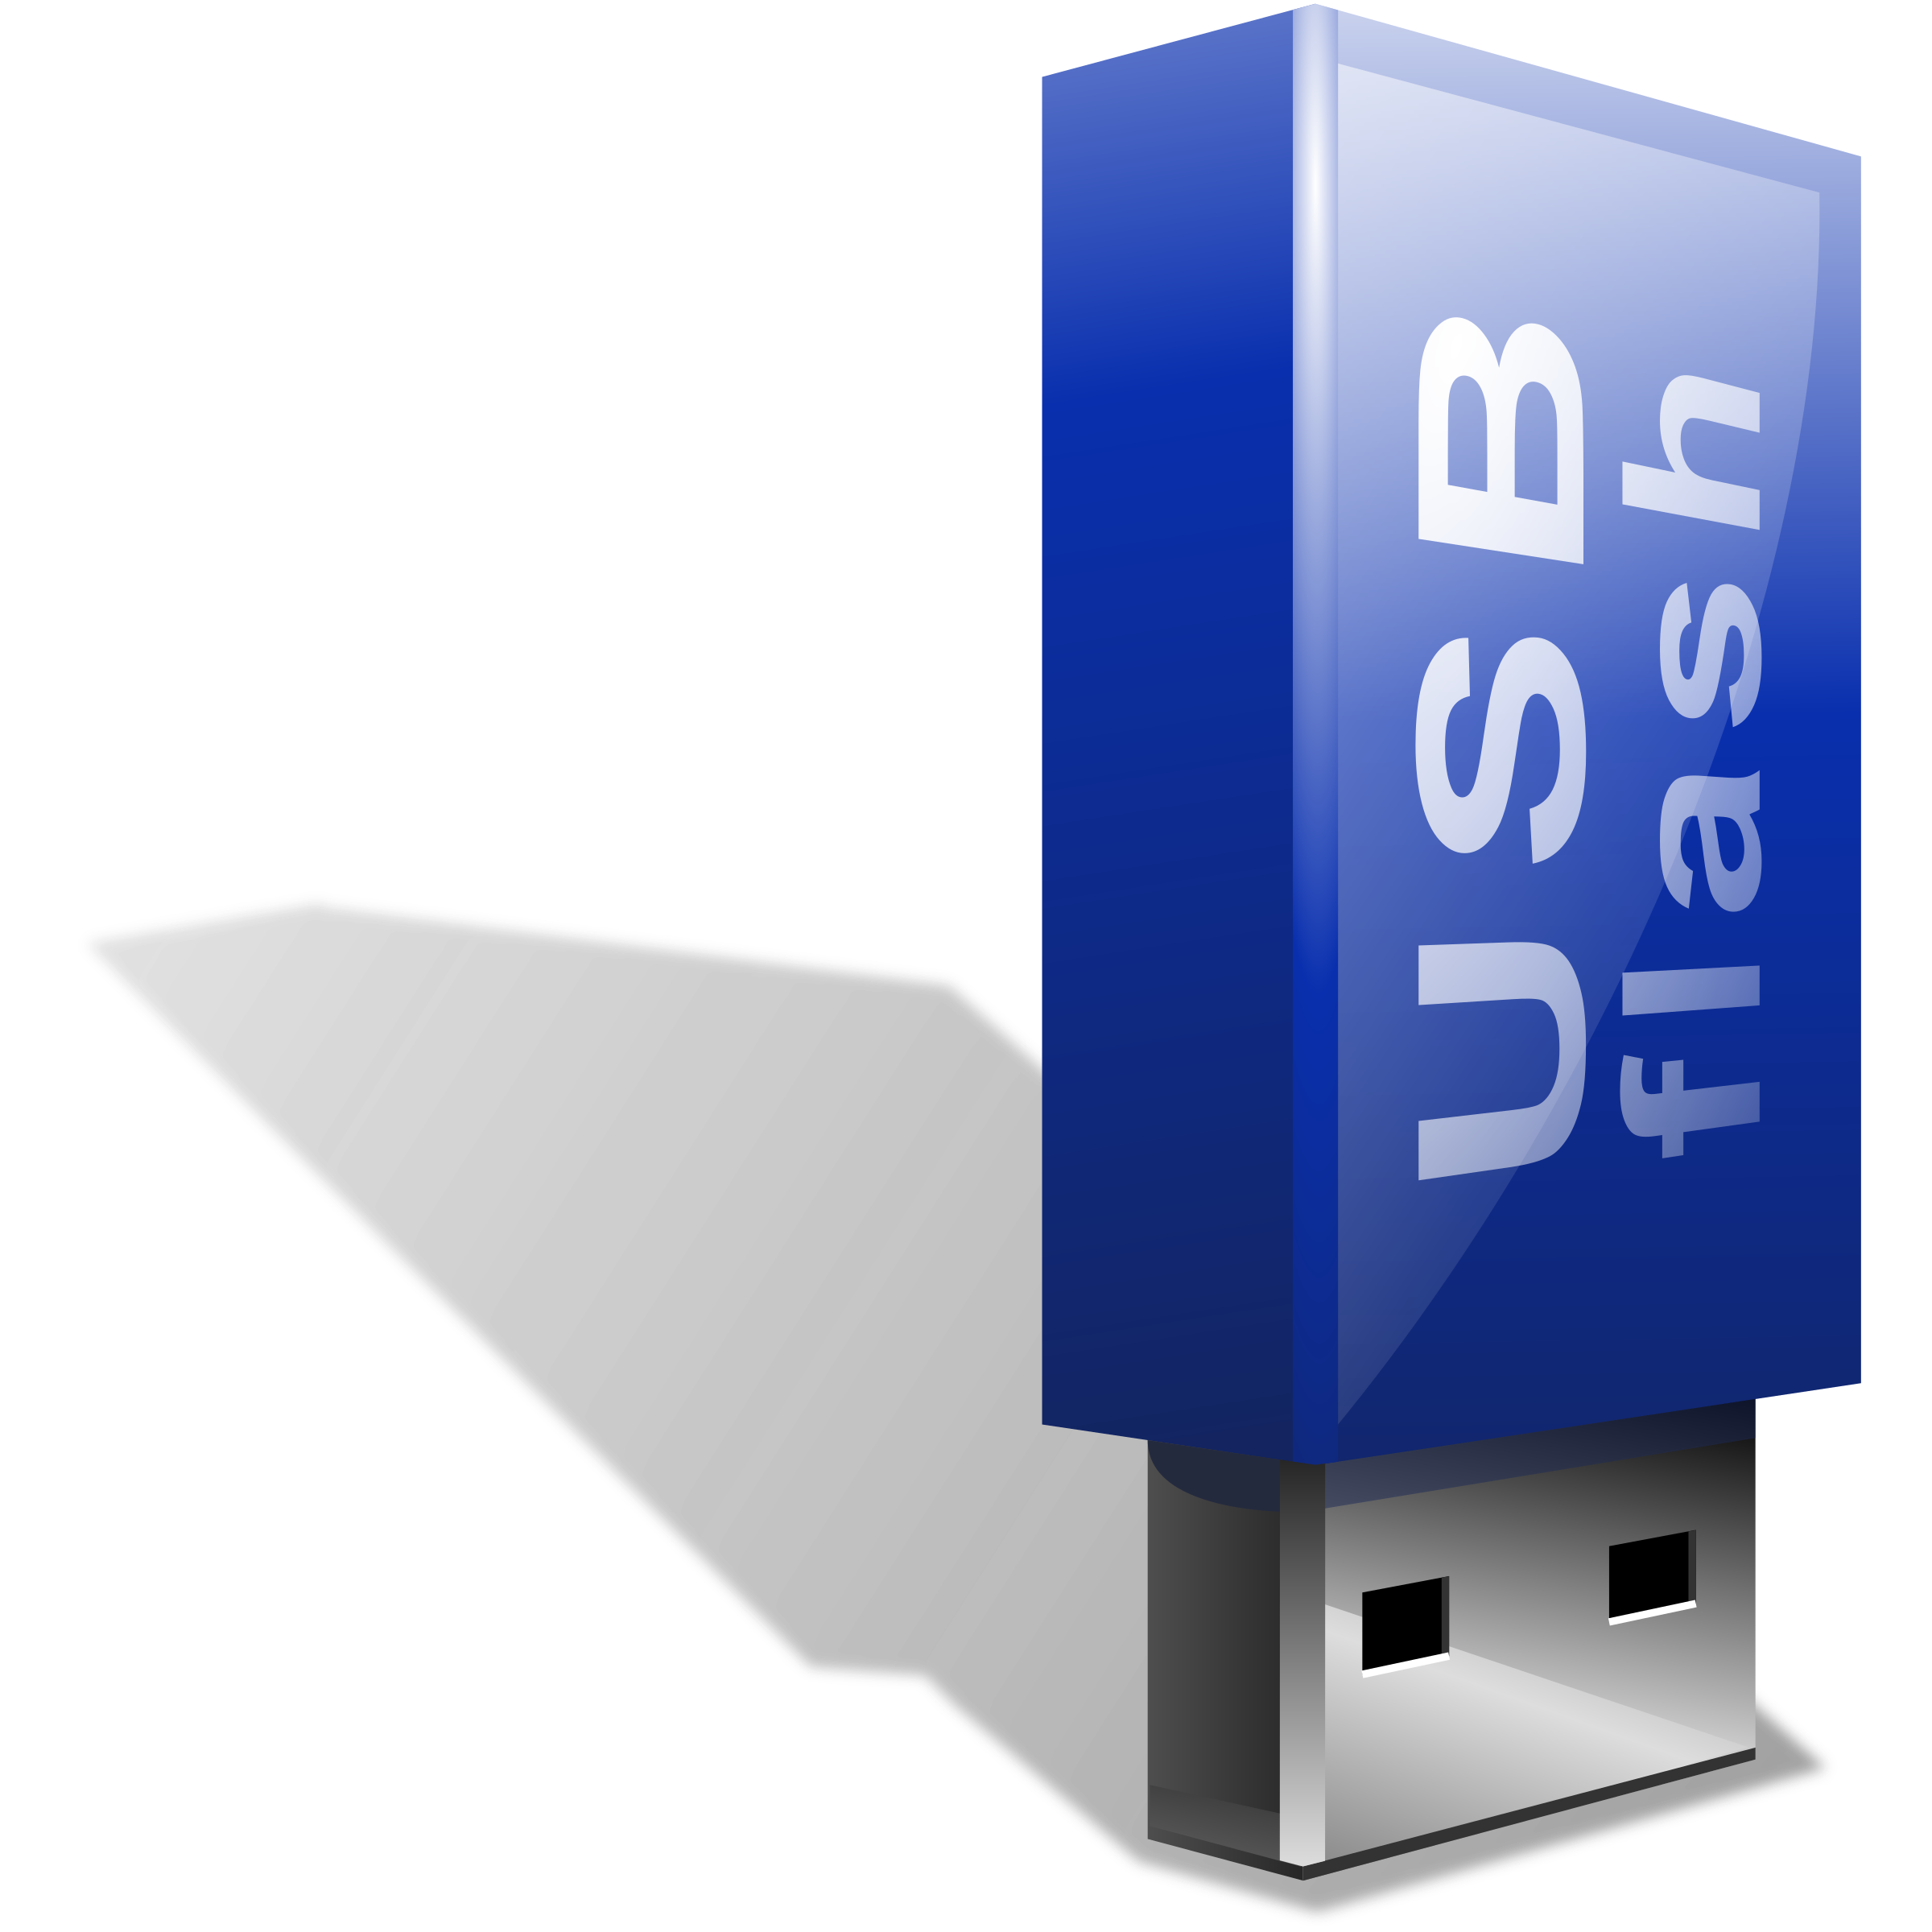 USB flash not green by Keistutis